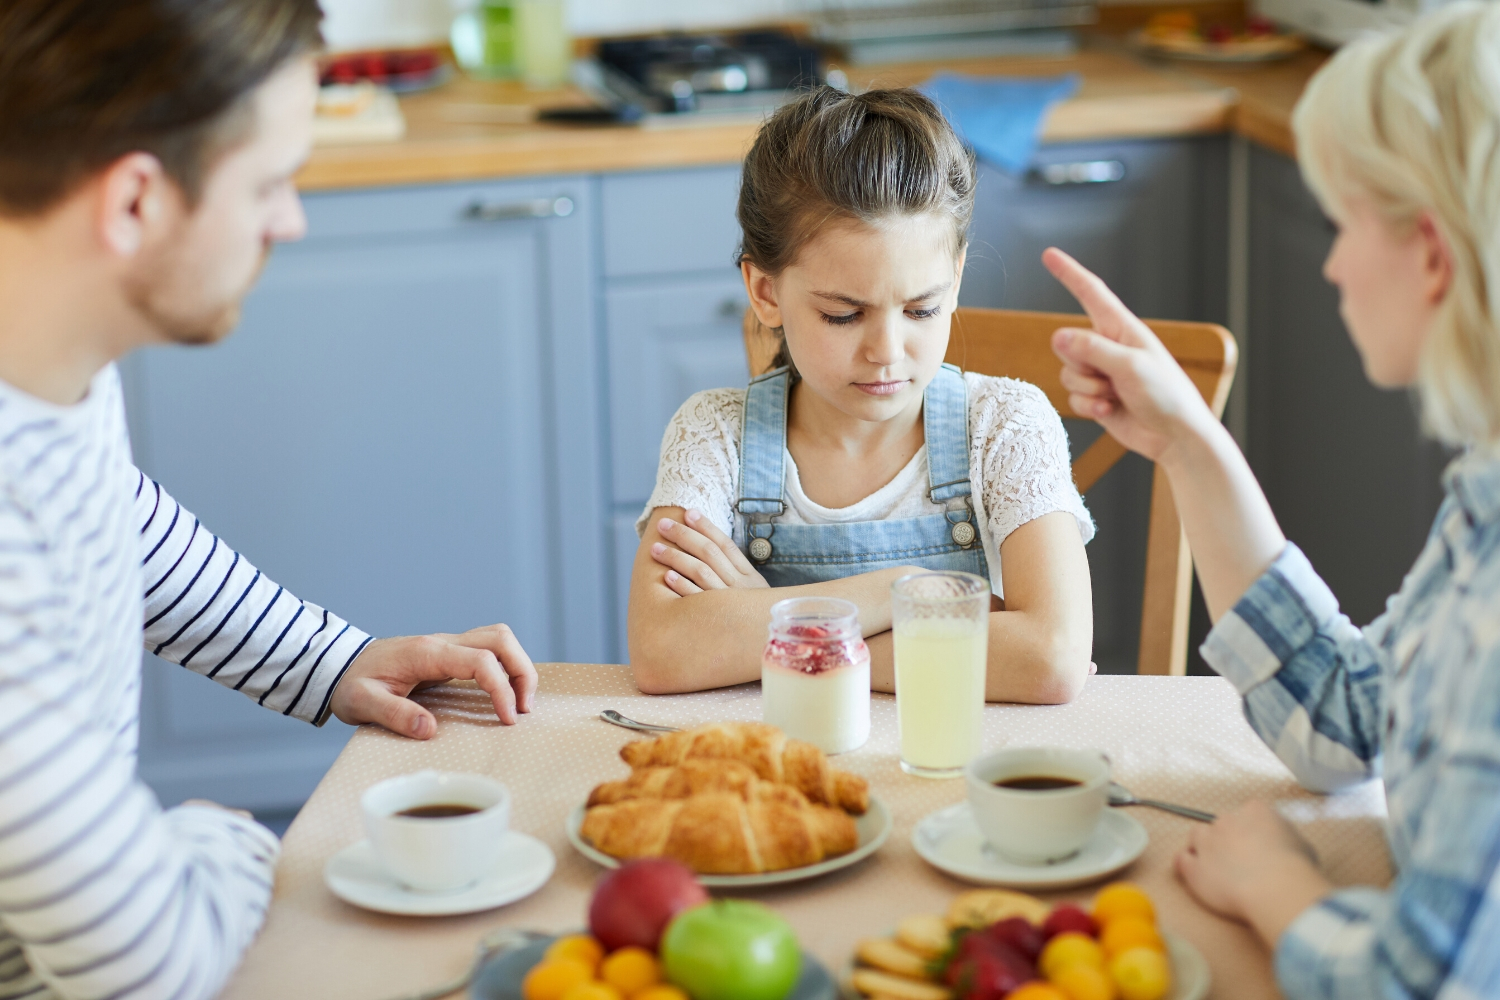 How to Raise Kids So They Will Not Become Narcissistic Adults